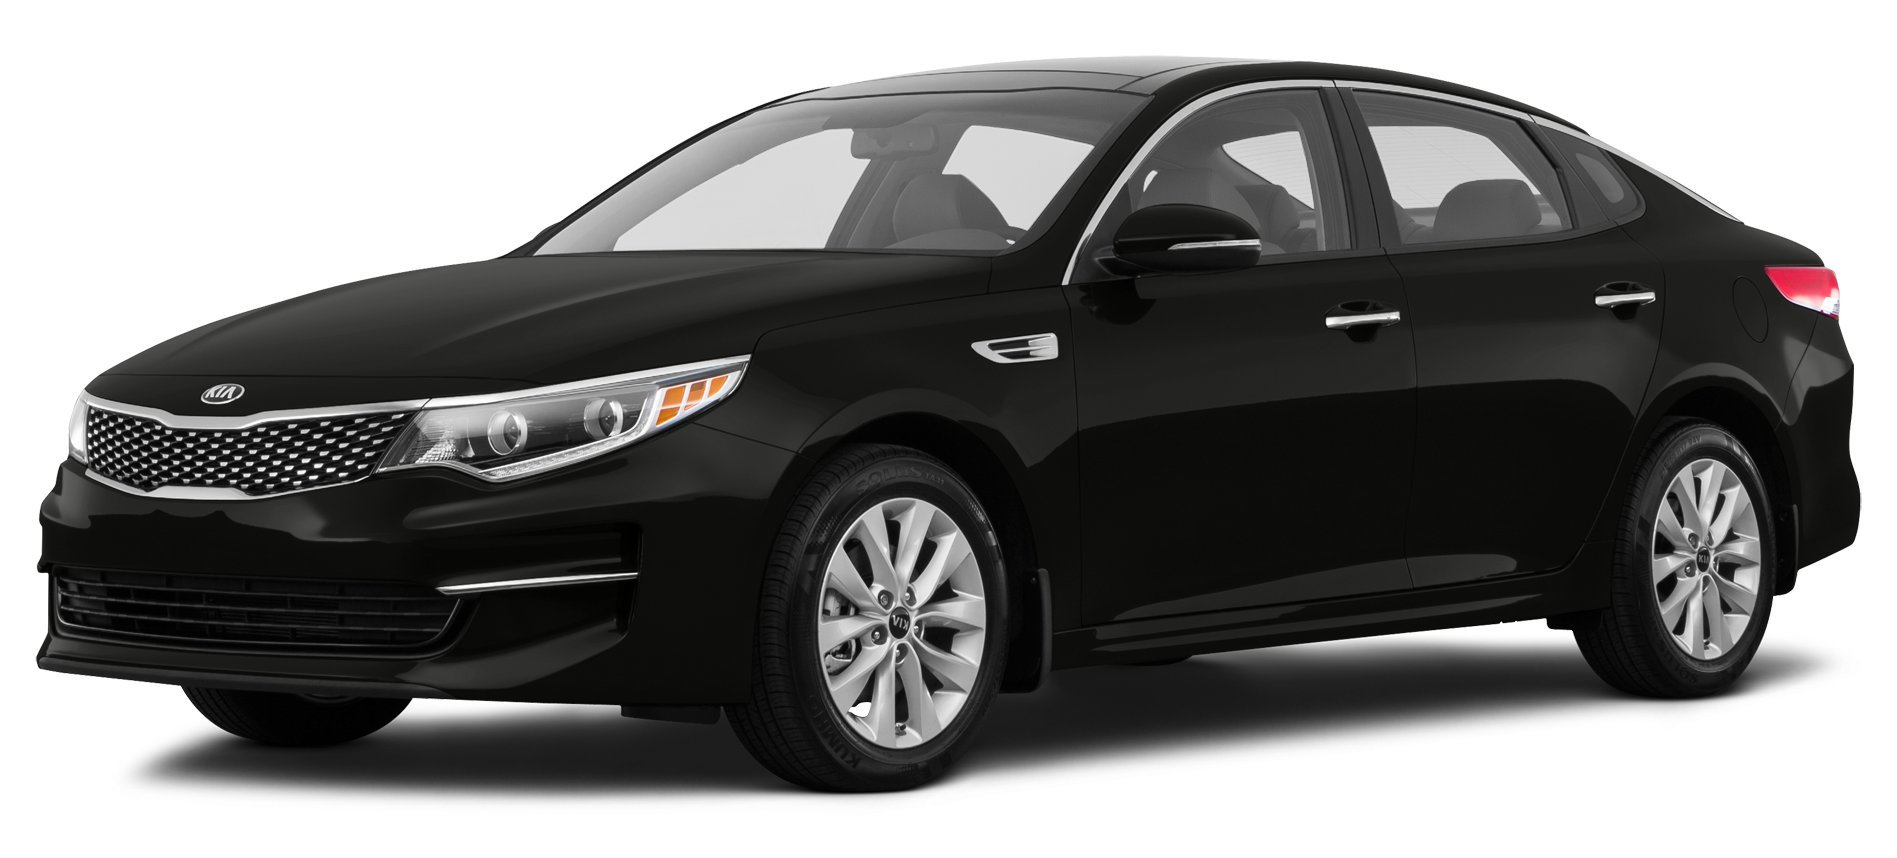 2016 kia optima reviews images and specs for Kia motors customer service number